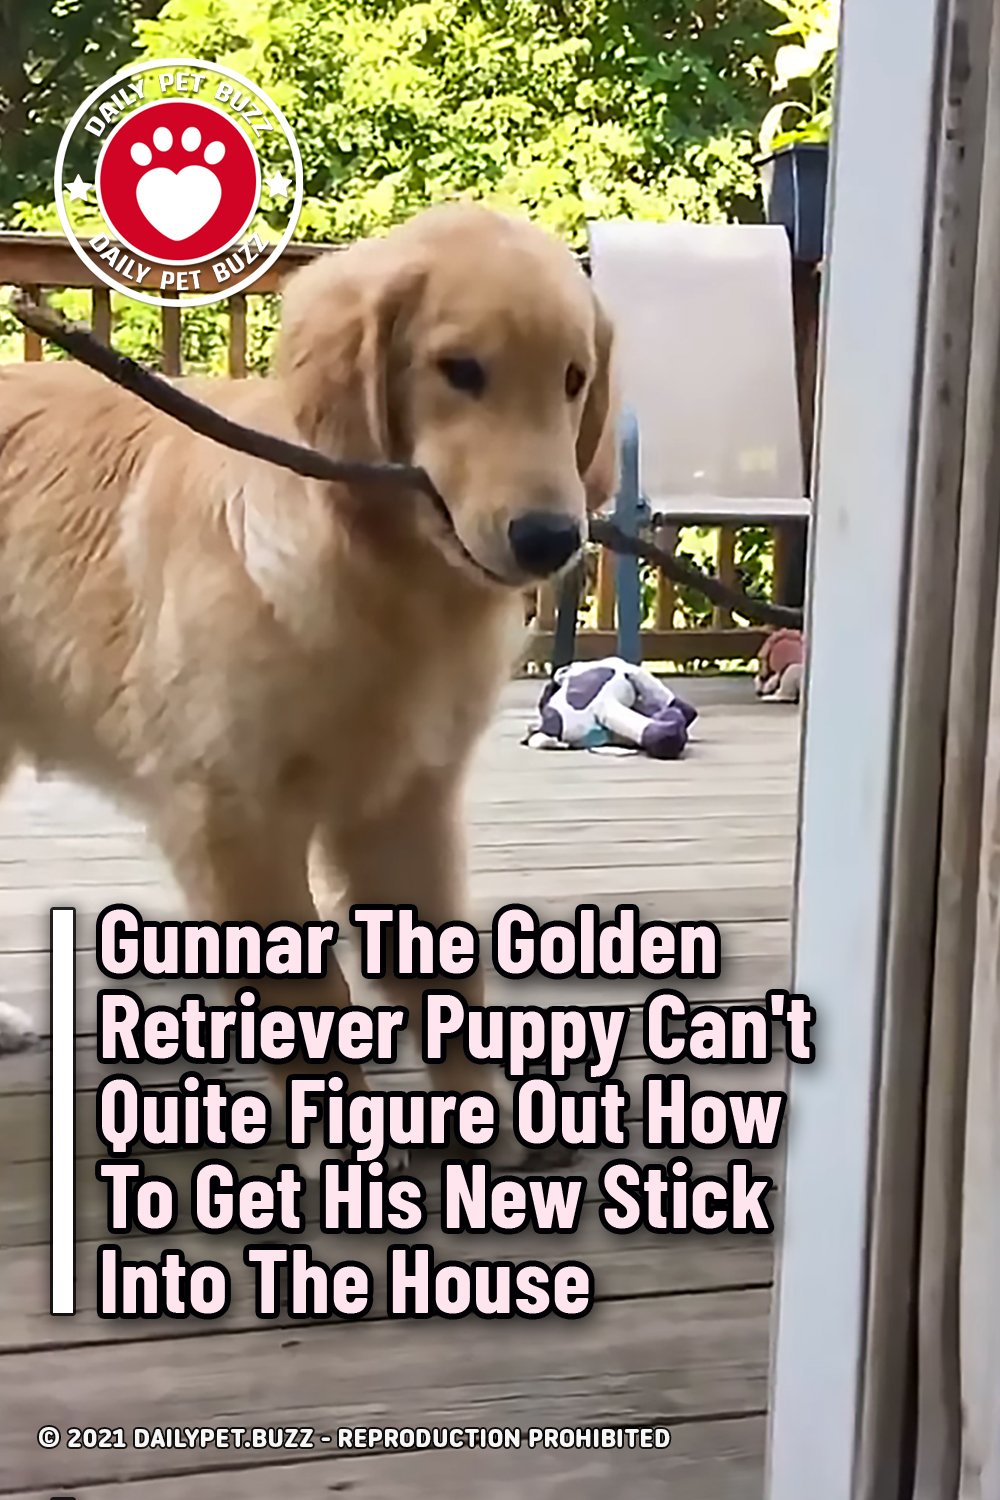 Gunnar The Golden Retriever Puppy Can\'t Quite Figure Out How To Get His New Stick Into The House